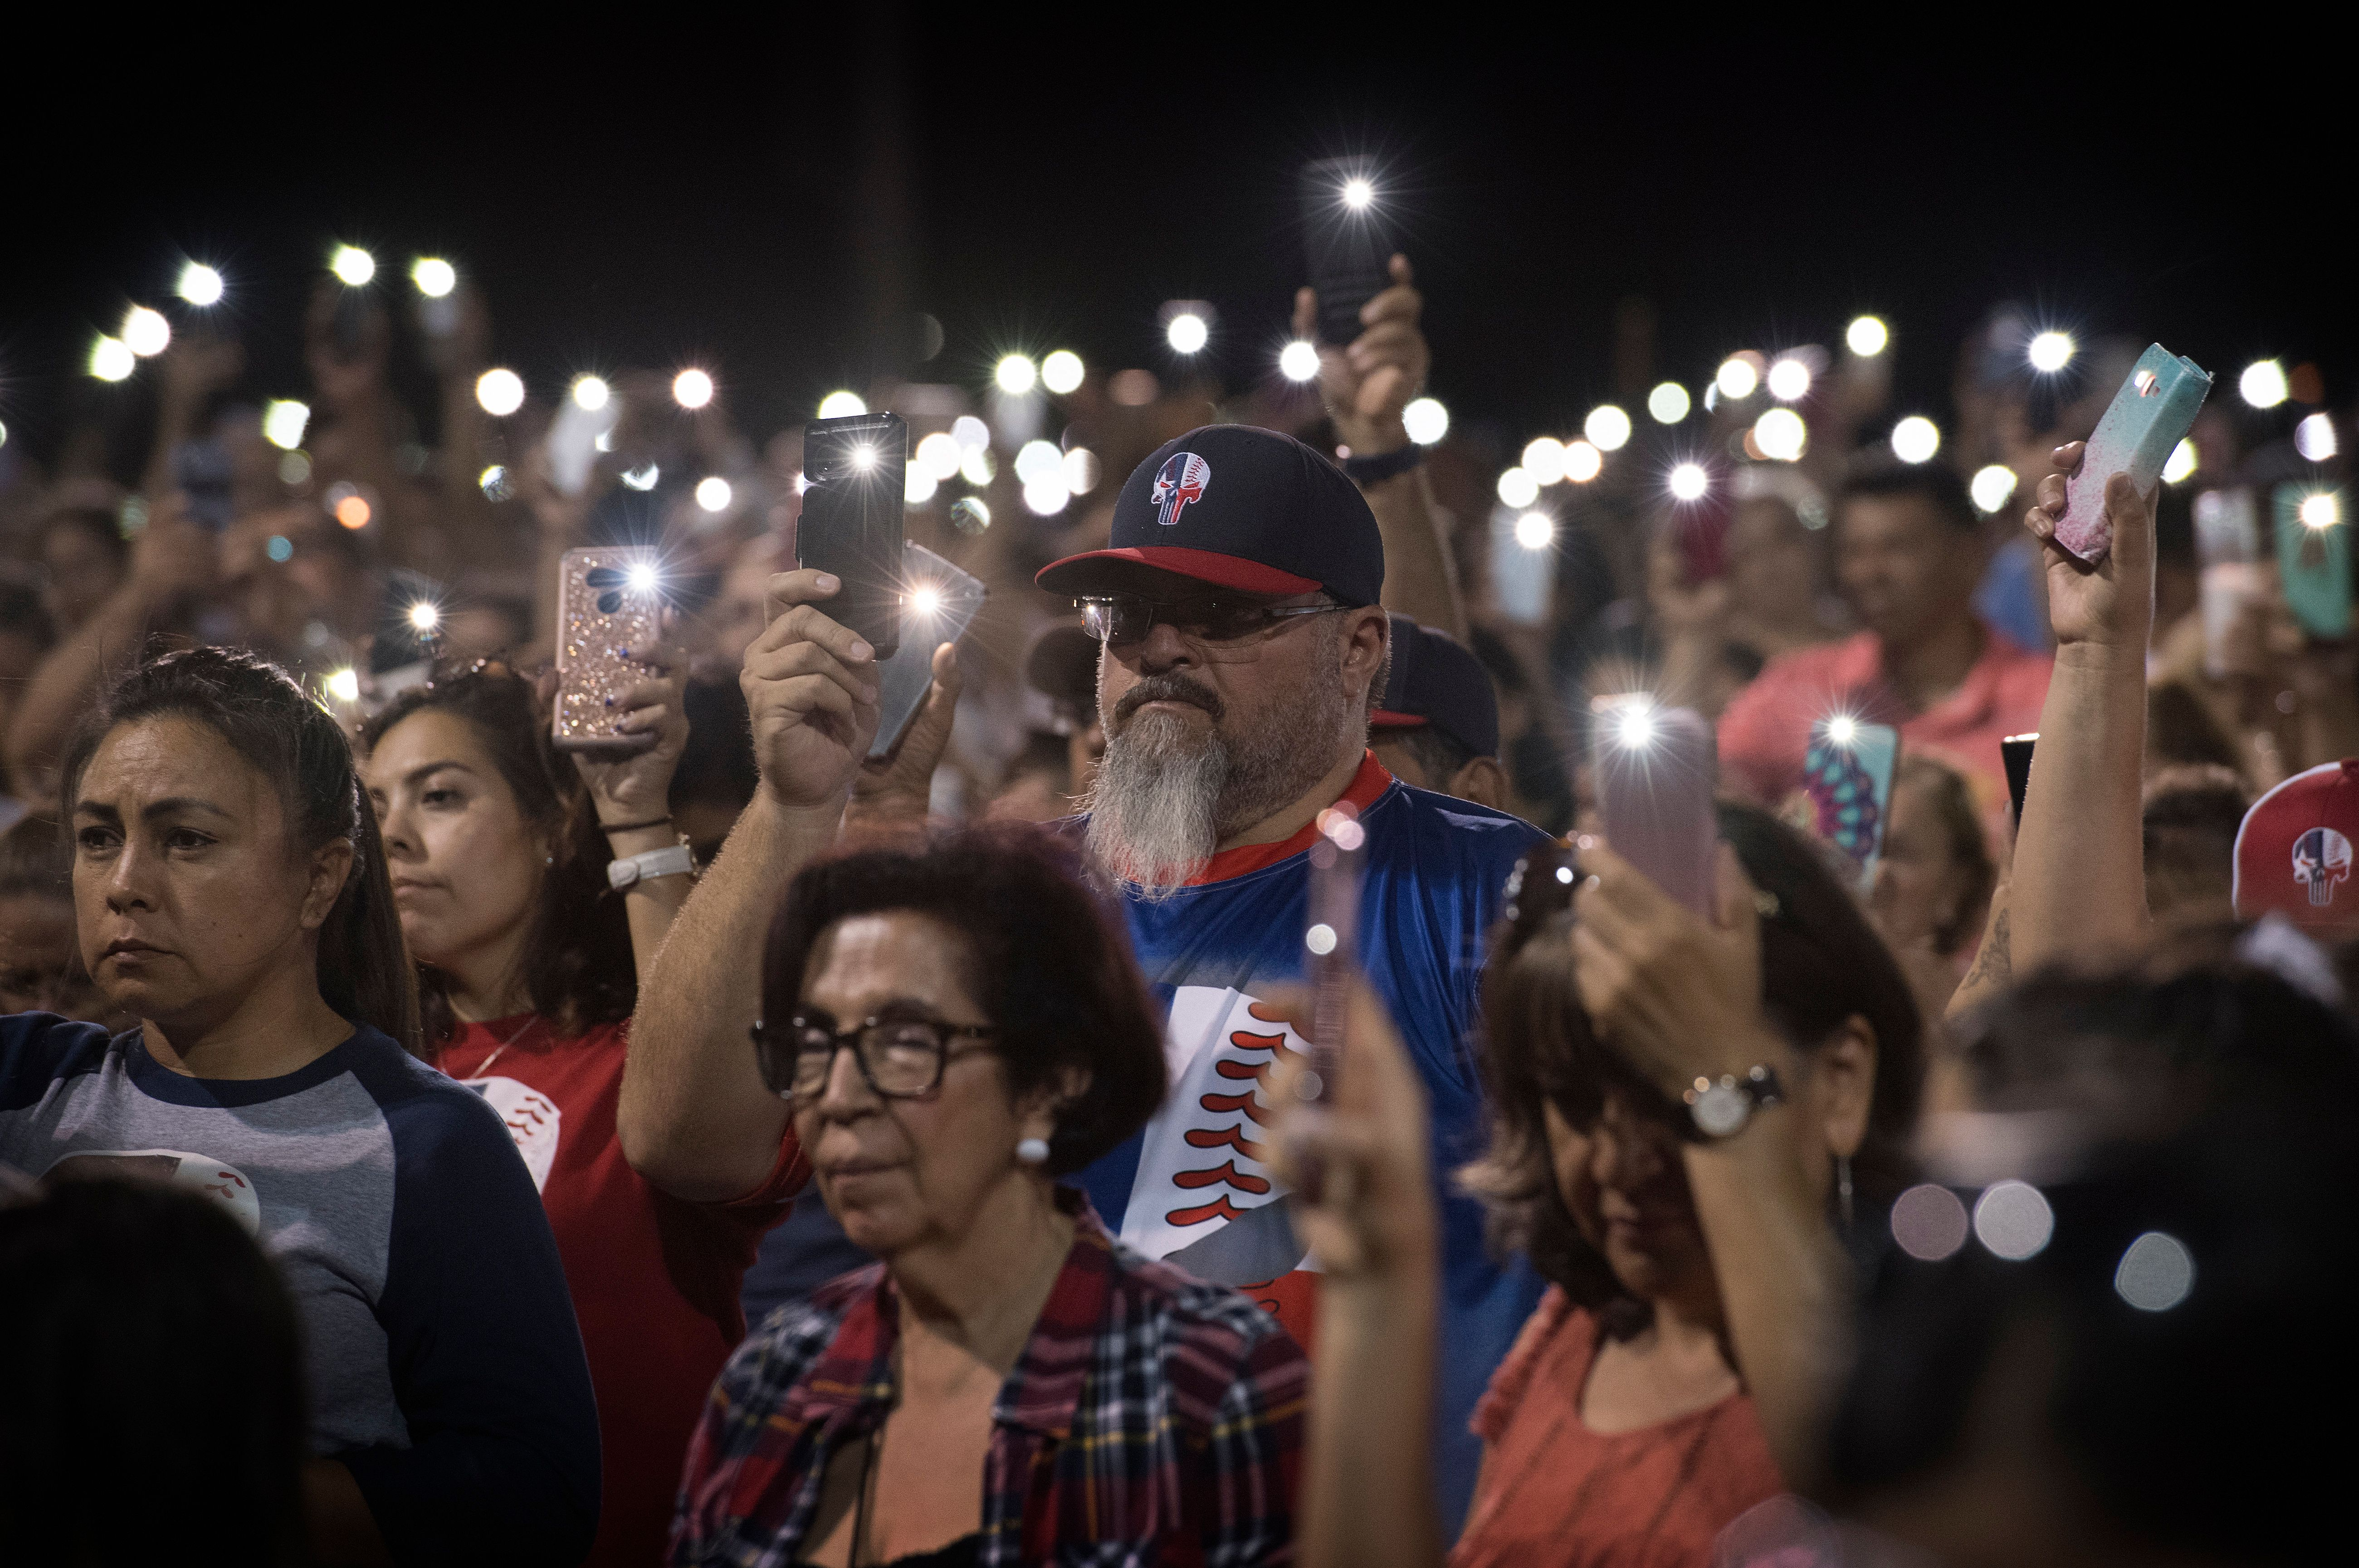 People hold up their phones during a prayer and candle vigil organized by the city, after a shooting left 20 people dead at the Cielo Vista Mall Wal-Mart in El Paso, Texas, on August 4, 2019. - The United States mourned Sunday for victims of two mass shootings that killed 29 people in less than 24 hours as debate raged over whether President Donald Trump's rhetoric was partly to blame for surging gun violence. The rampages turned innocent snippets of everyday life into nightmares of bloodshed: 20 people were shot dead while shopping at a crowded Walmart in El Paso, Texas on Saturday morning, and nine more outside a bar in a popular nightlife district in Dayton, Ohio just 13 hours later. (Photo: MARK RALSTON/AFP/Getty Images)